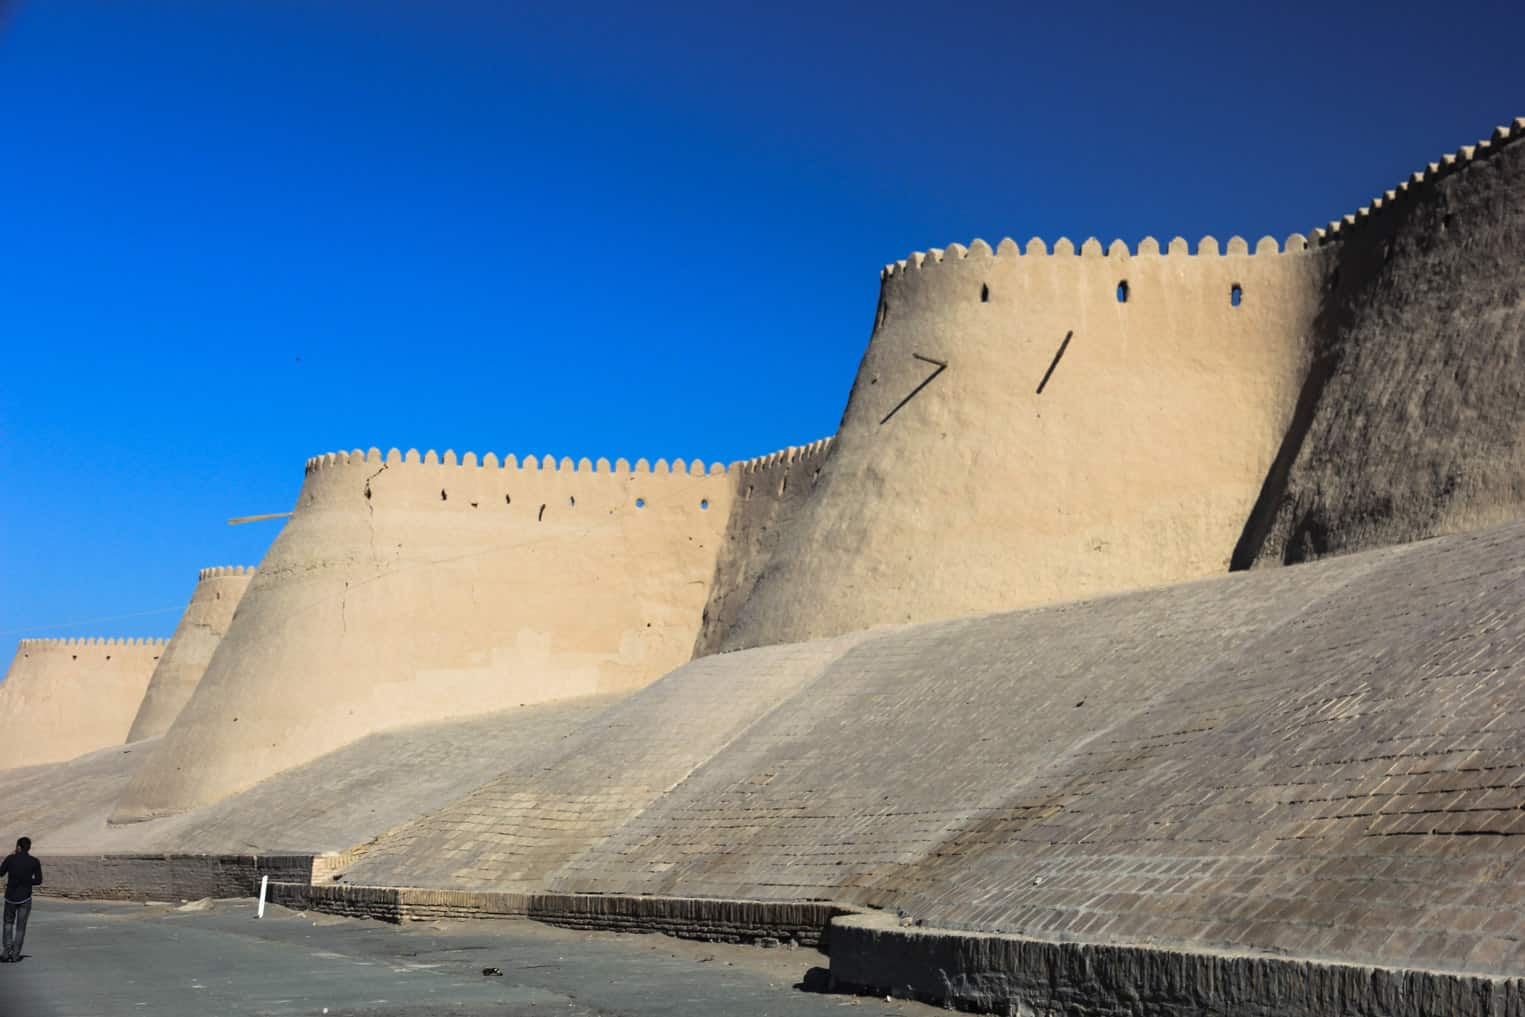 Part of the 10 meter tall wall surrunding old town Khiva